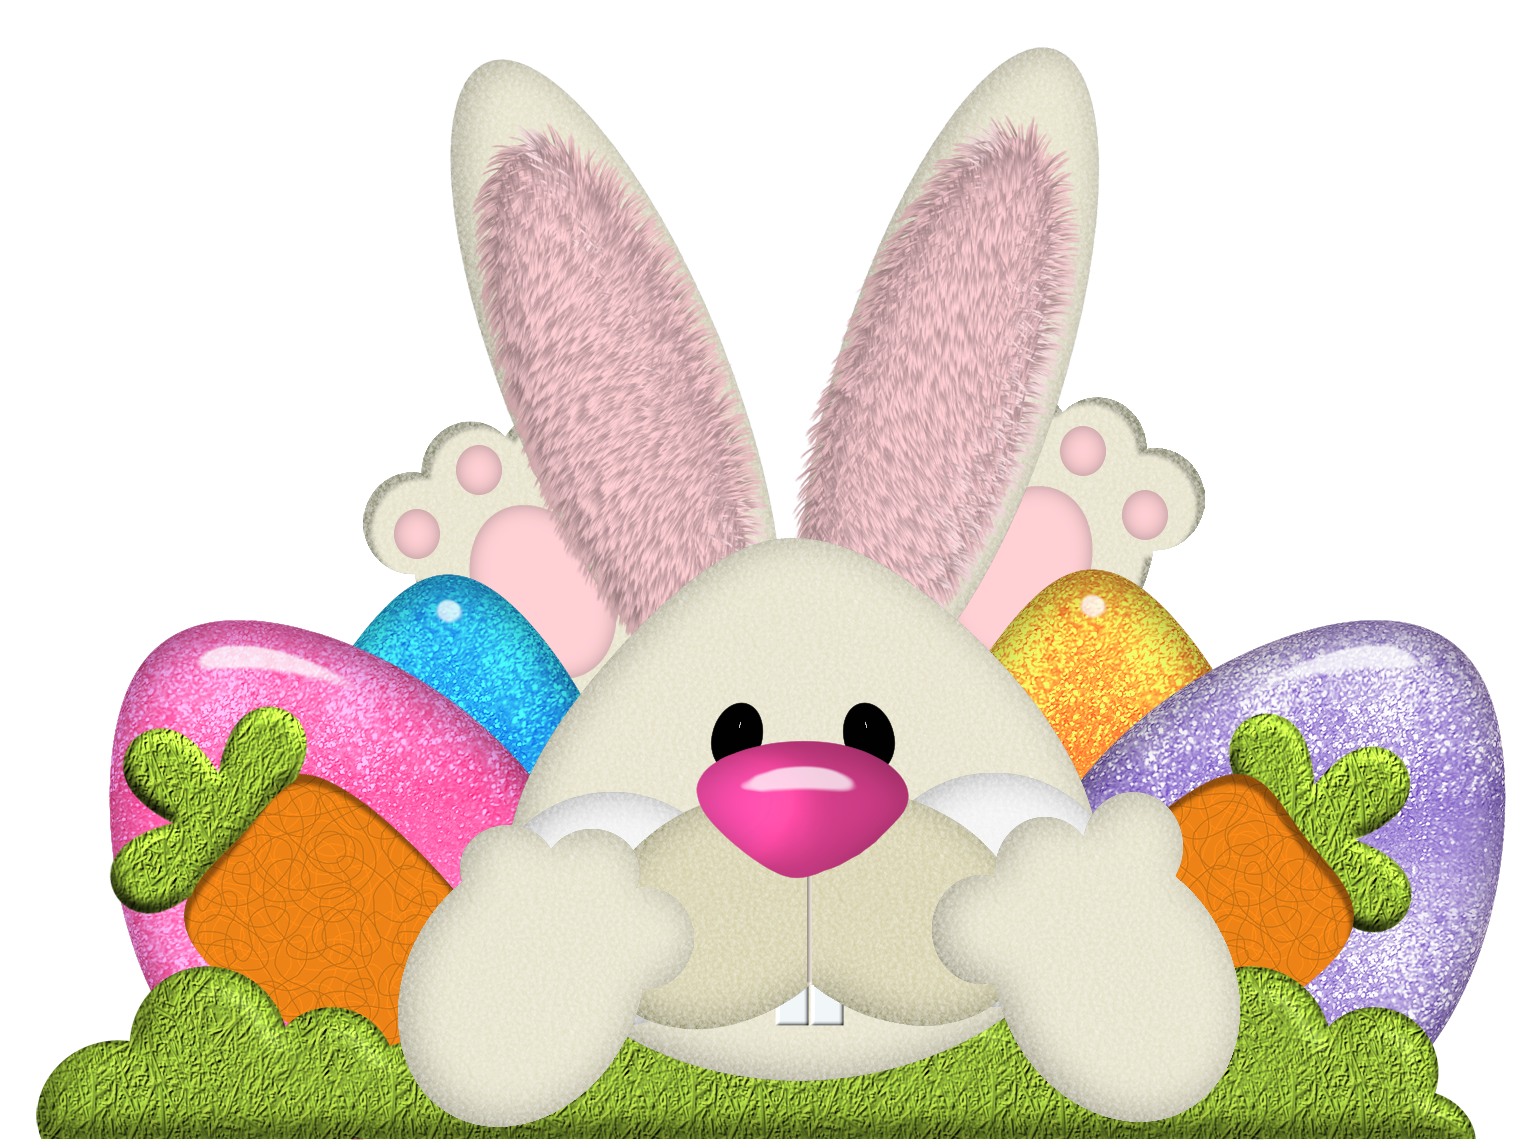 Easter Bunny PNG File - Easter Bunny With Eggs PNG